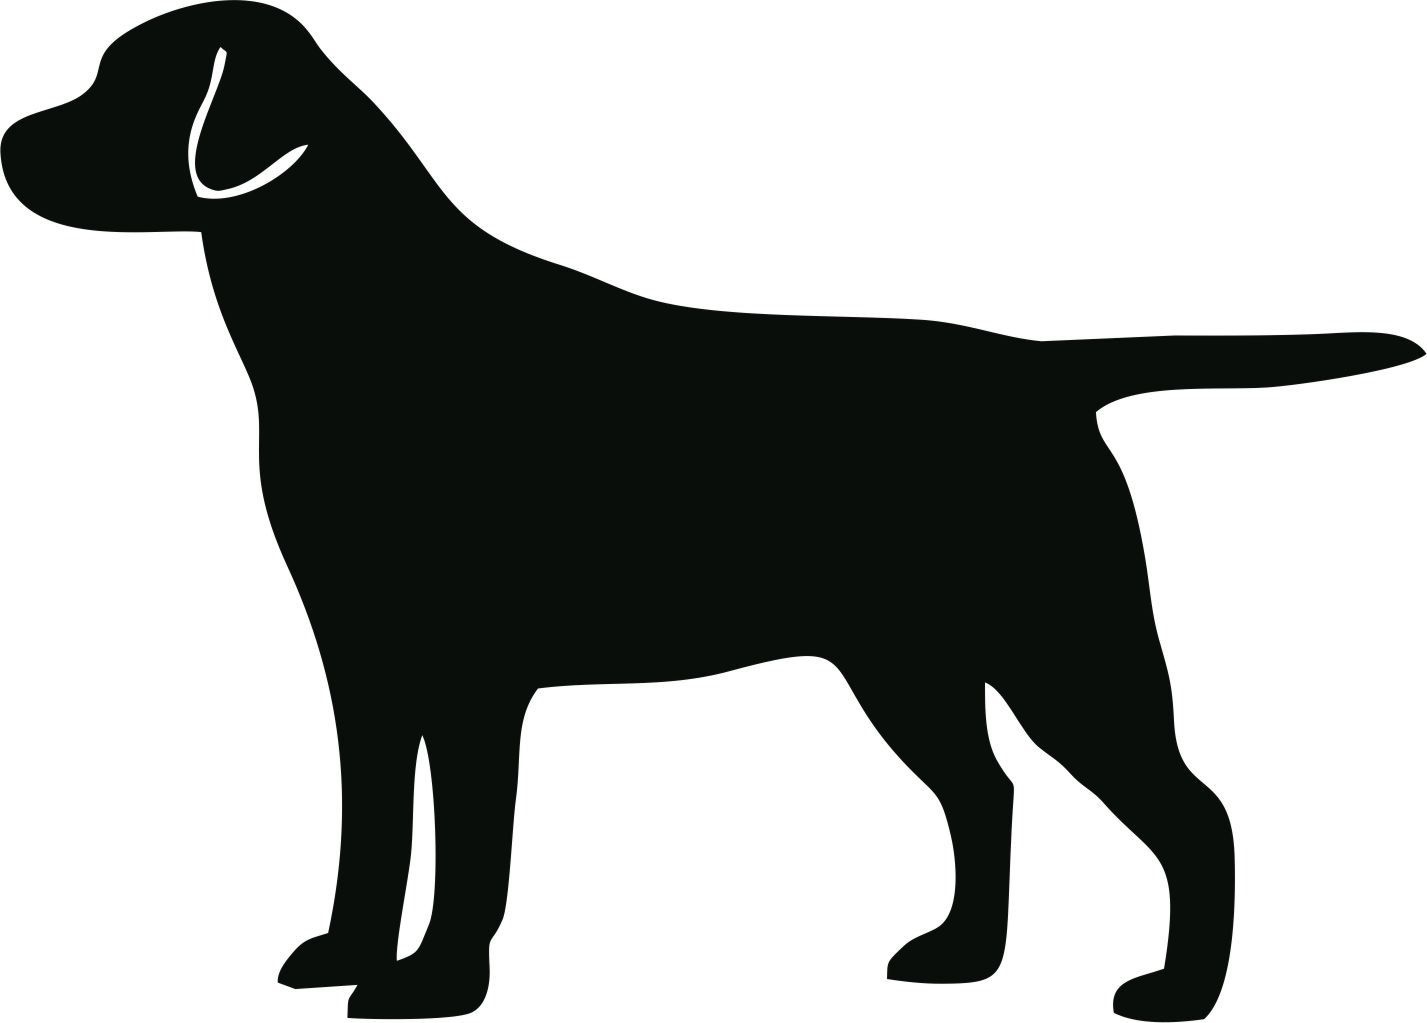 Hunting Dog Silhouette Clipart Free Clip Art Images.